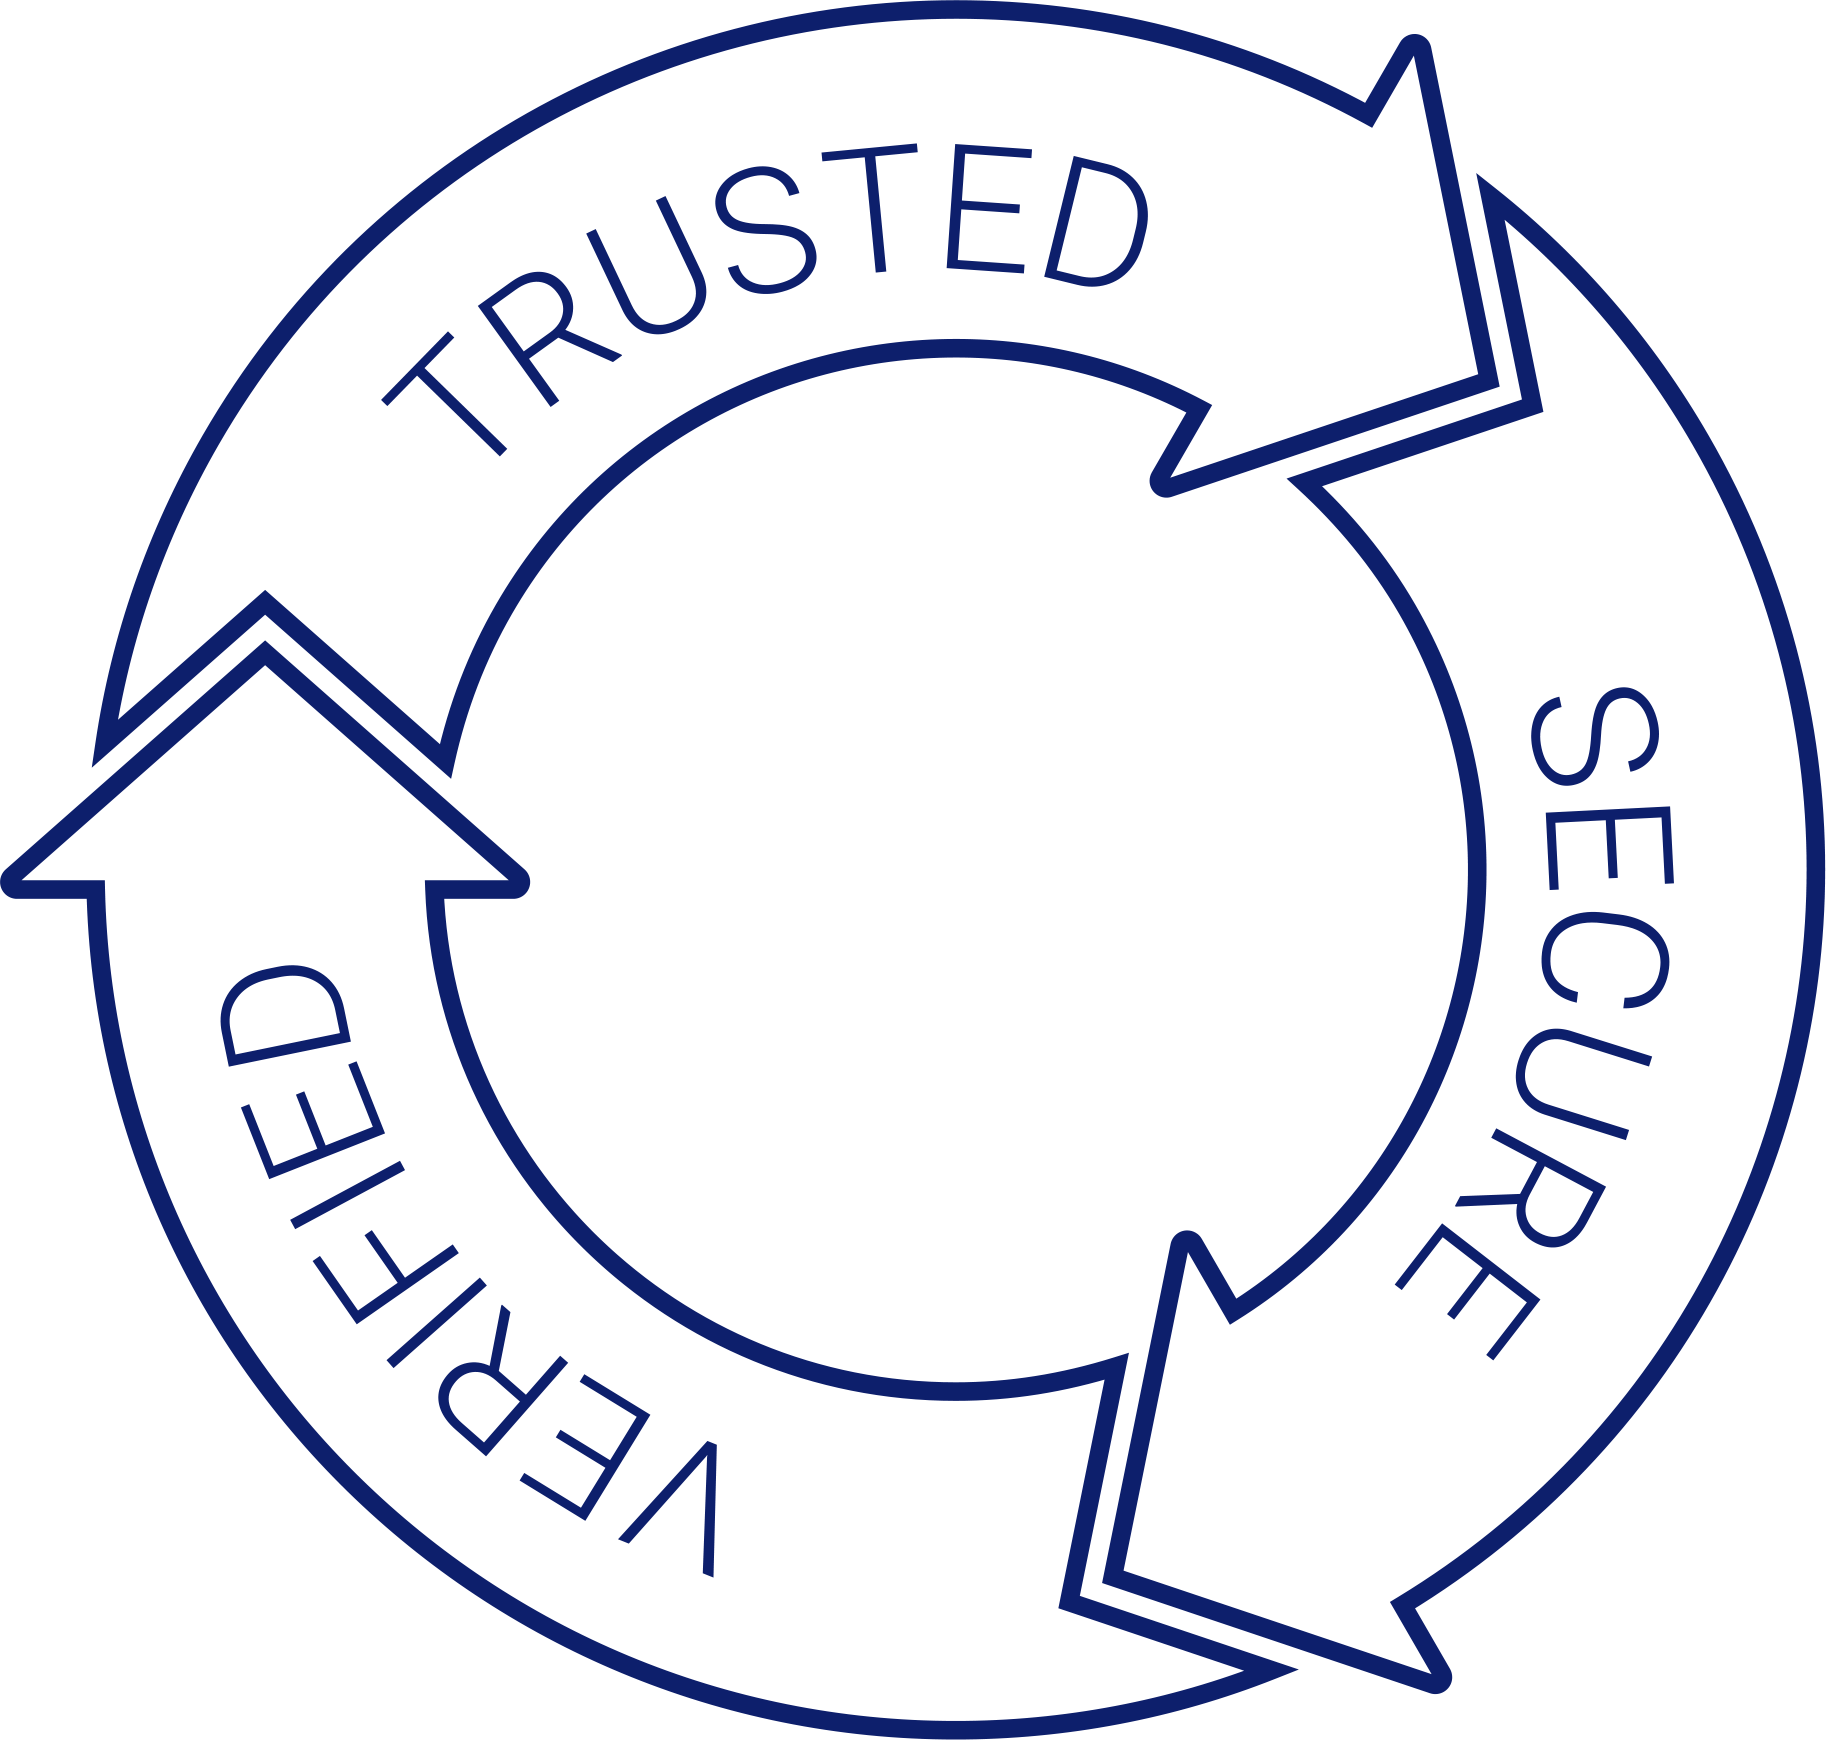 Trusted Secure Verified